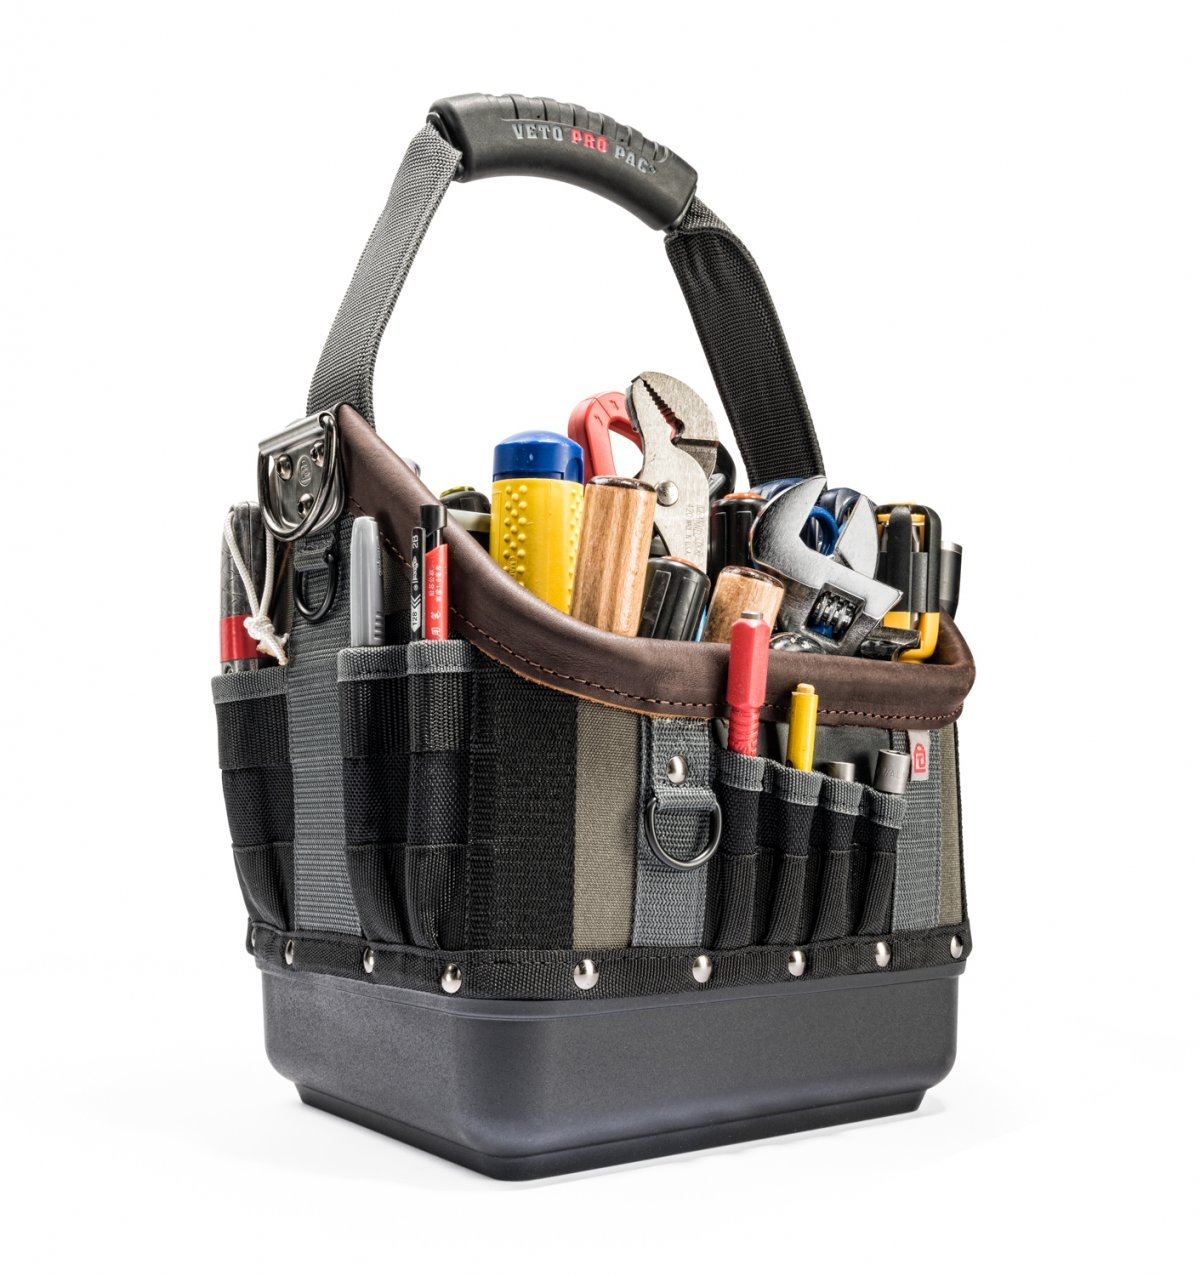 TECHOT-MC Veto COMPACT Open Top Tool Bag by Veto